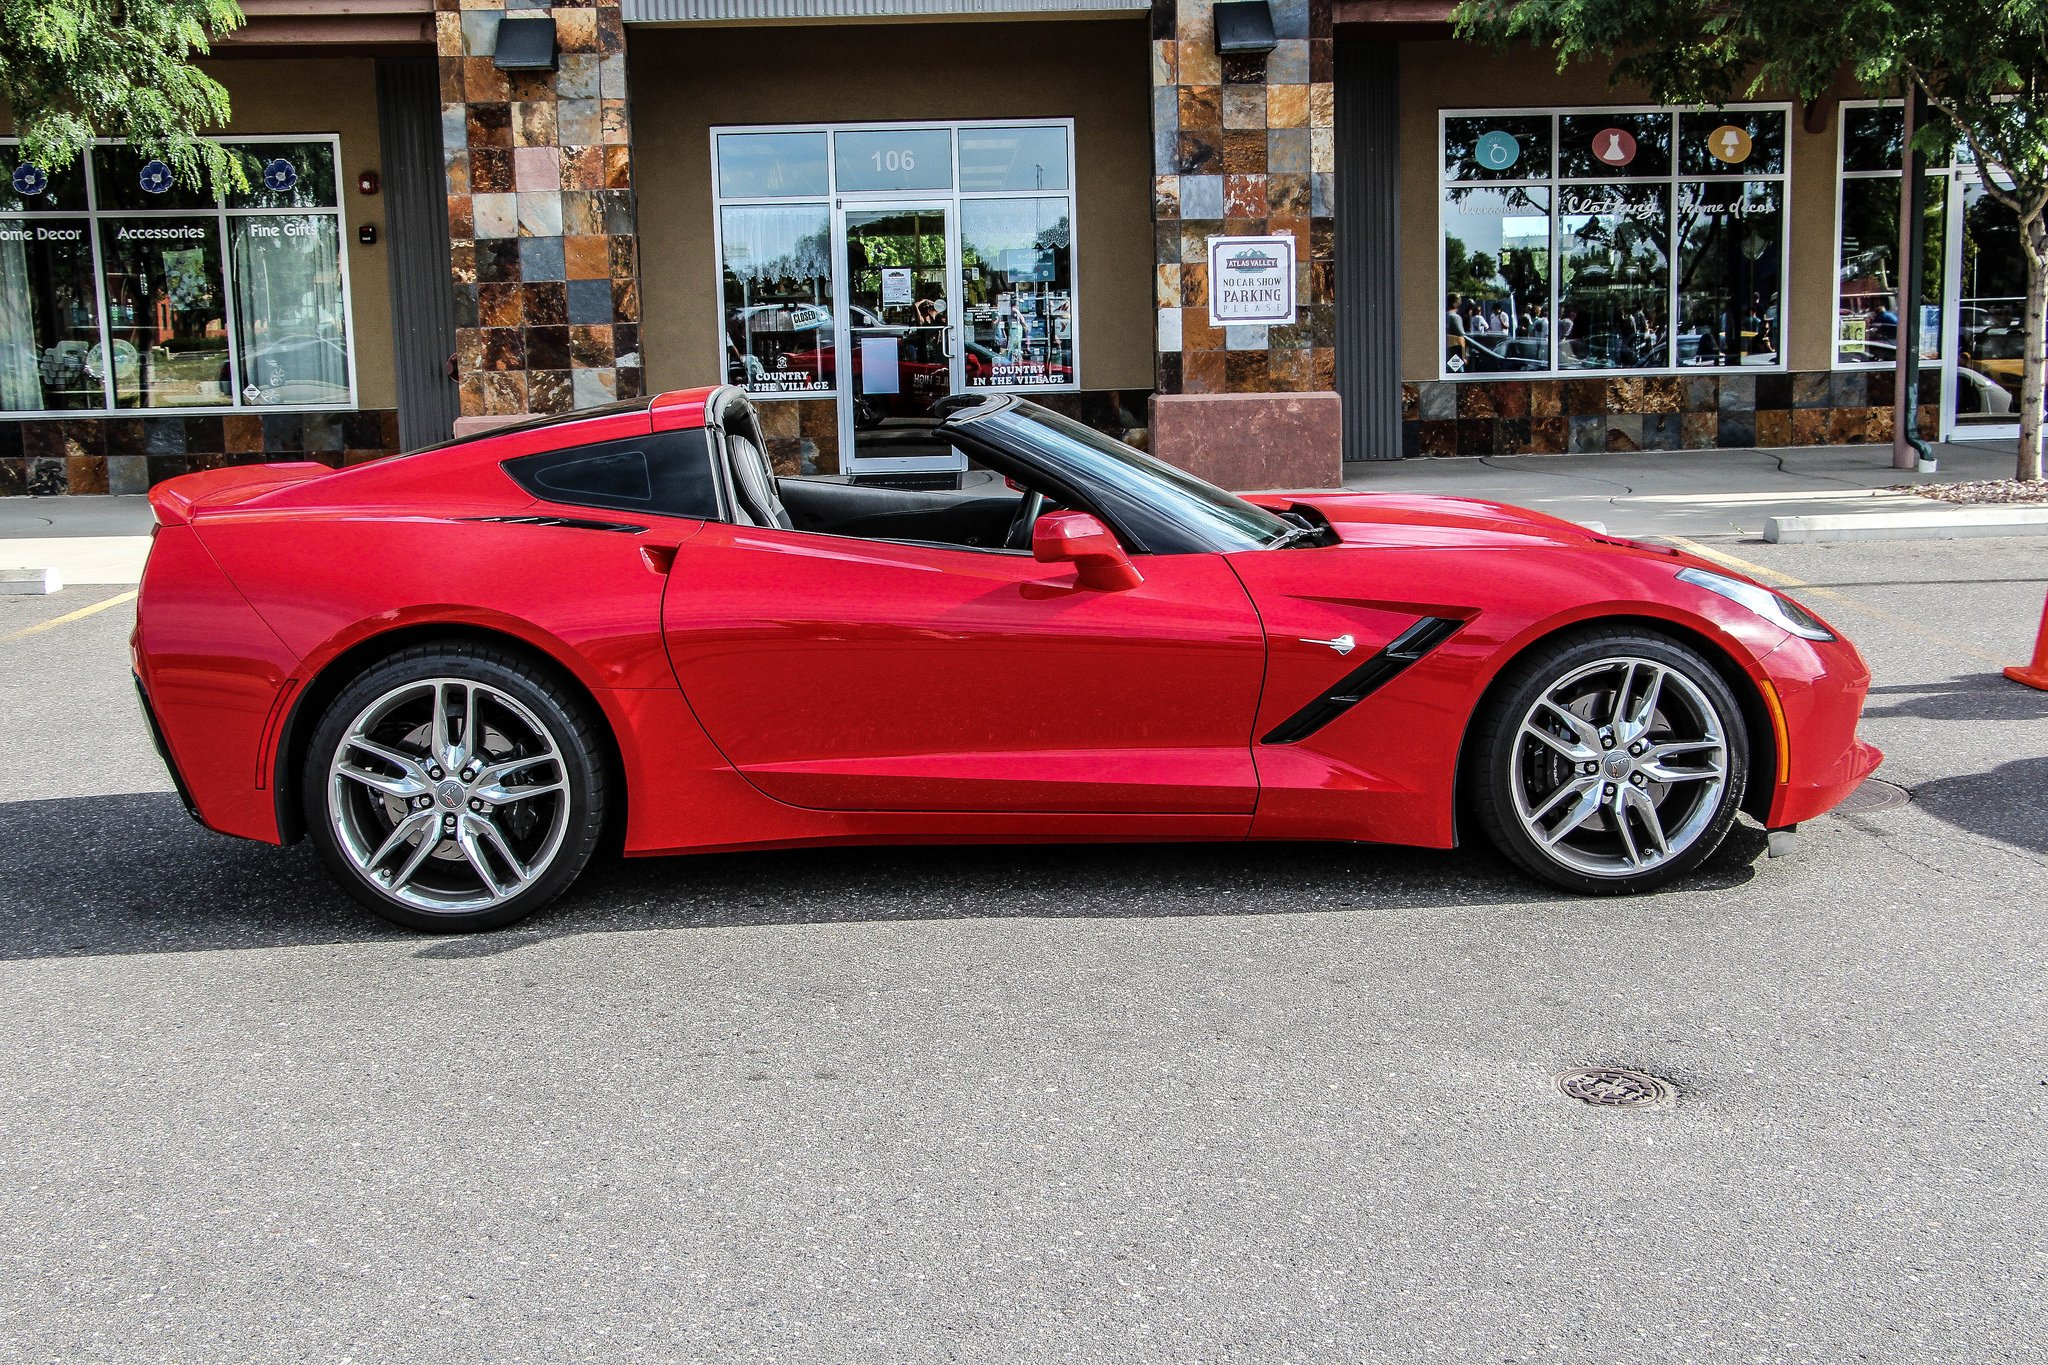 Chevy Chevrolet Corvette C7 muscle stingray Supercars convertible cars usa red rouge wallpaper ...